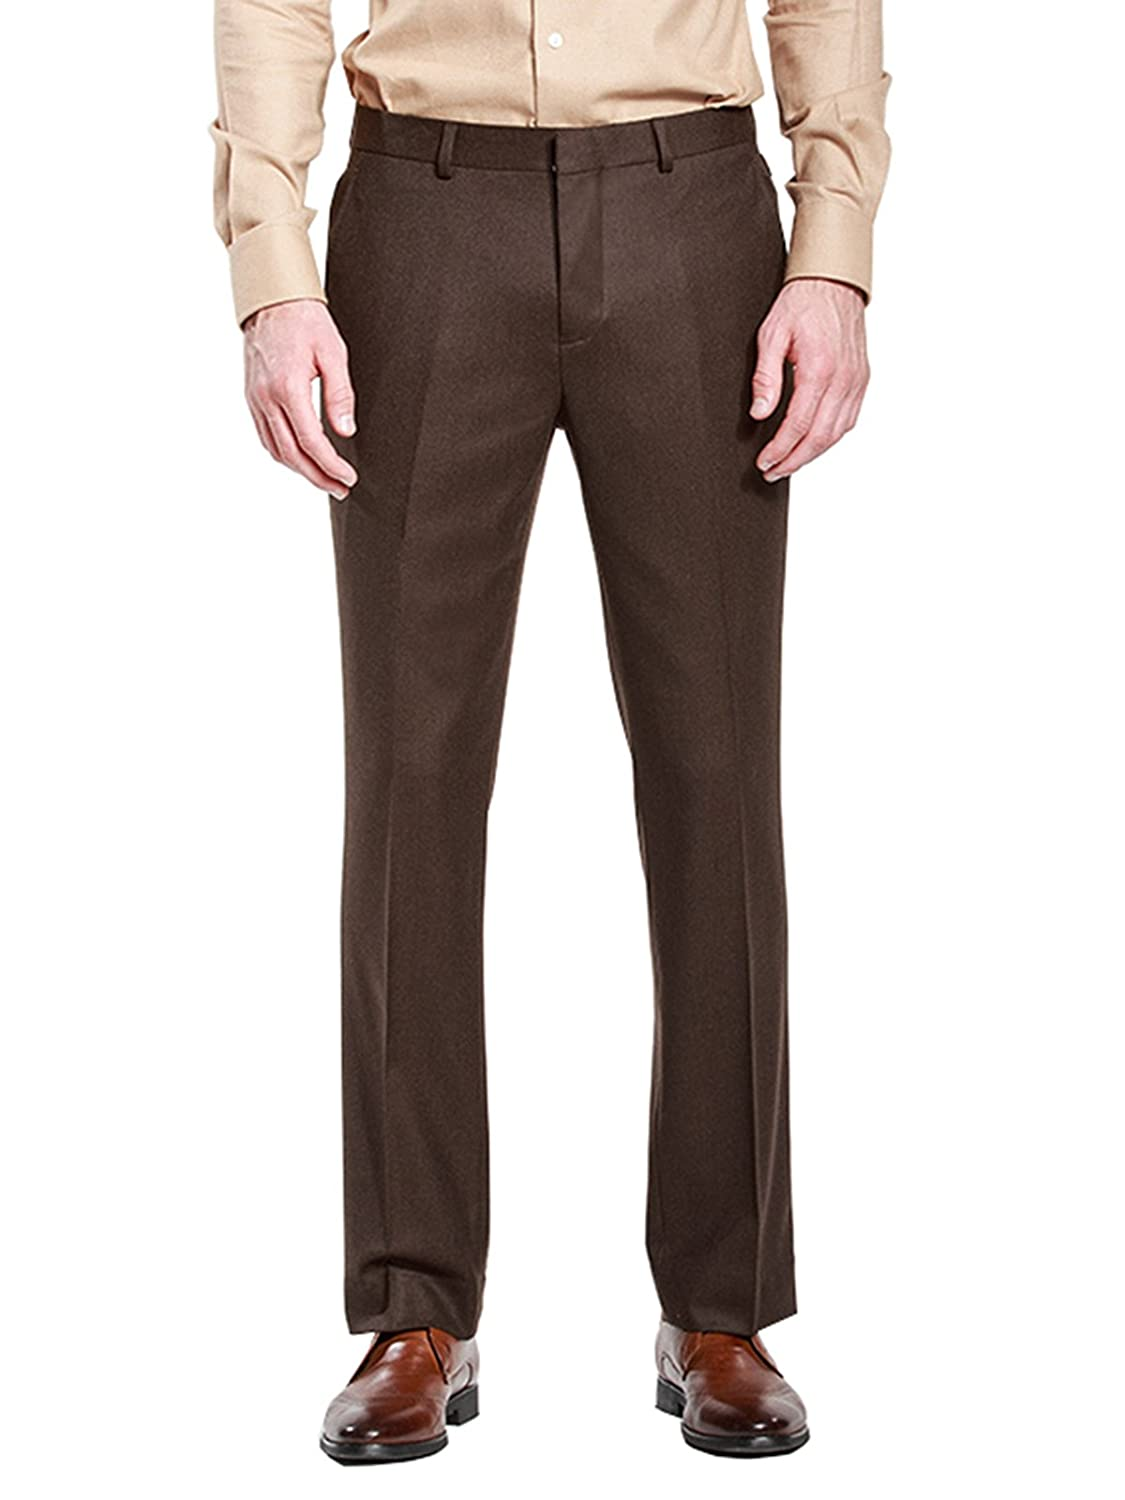 HBDesign Mens Outdoor Ball Slim Fit Flat Straight Brown Iron Free Pants HMP5004BR